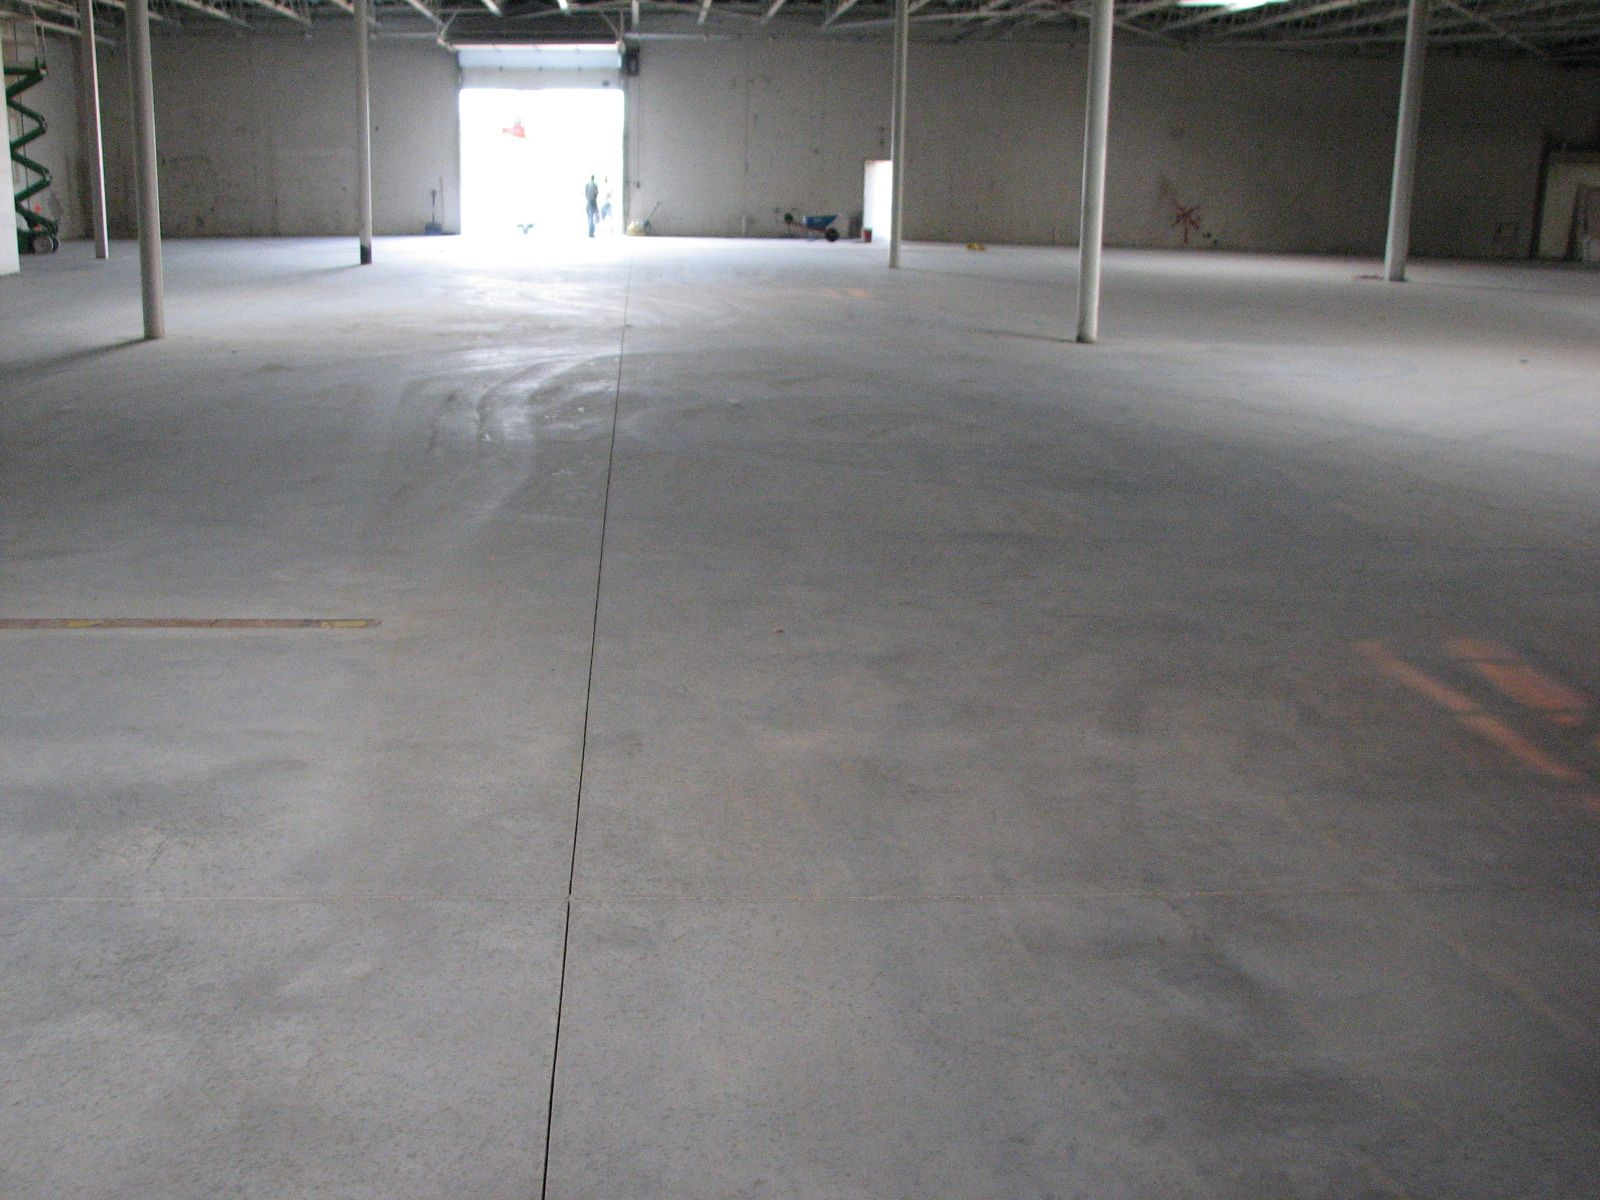 Great Polished Concrete Floors Img 2127 Jpg Check More At Http Www Solutionshouse Co Uk Polished Concret Polished Concrete Concrete Floors Diy Concrete